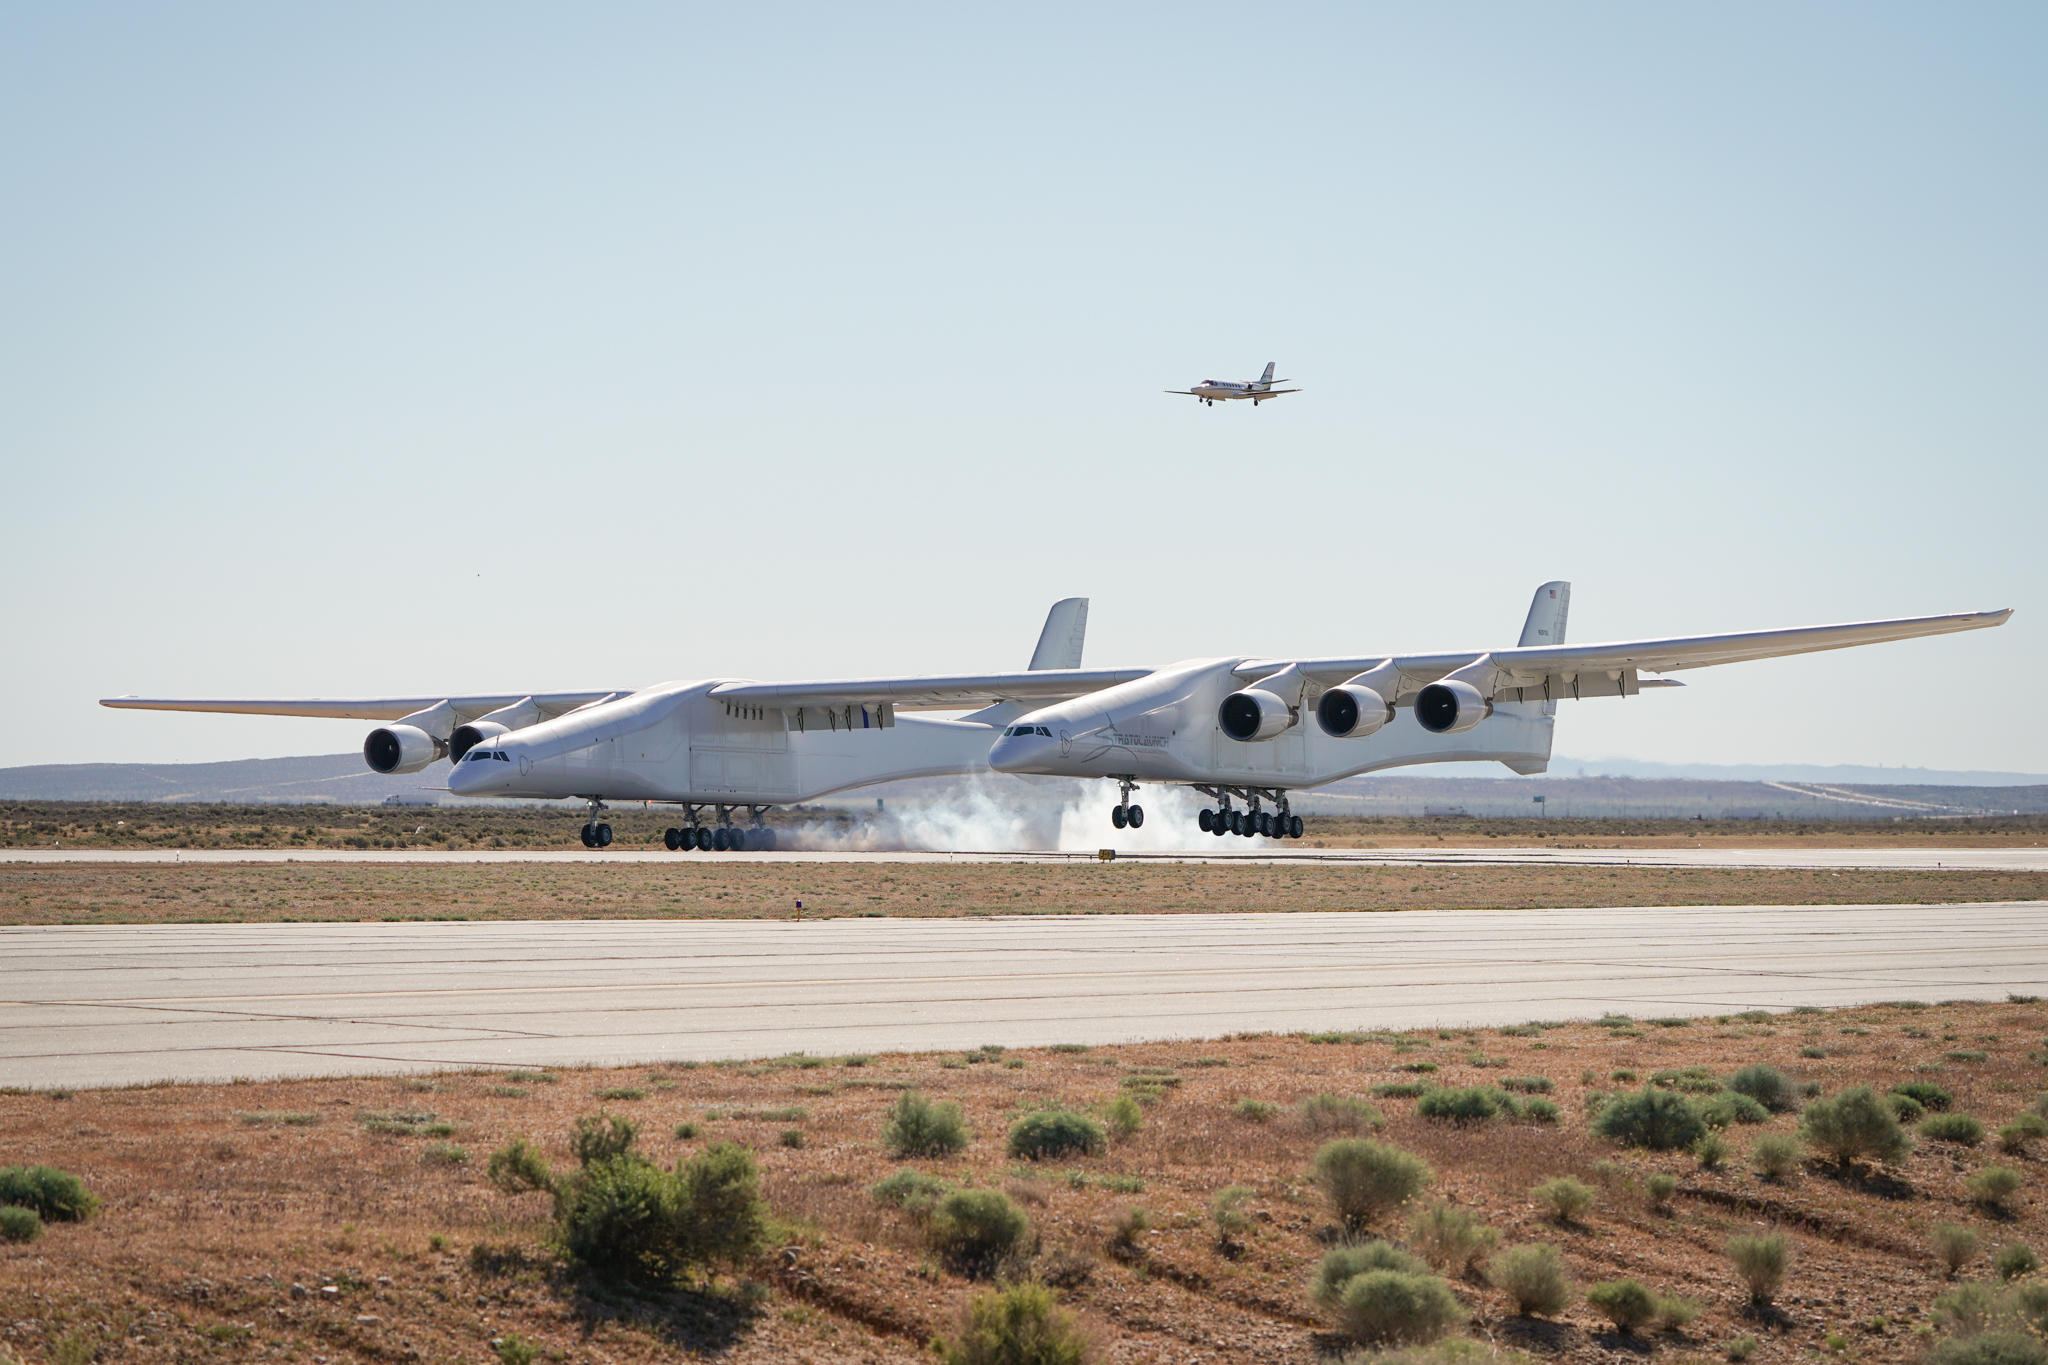 https://s3-us-west-2.amazonaws.com/stratowp-prod/wp-content/uploads/2019/04/13185321/Stratolaunch_FF-02545.jpg